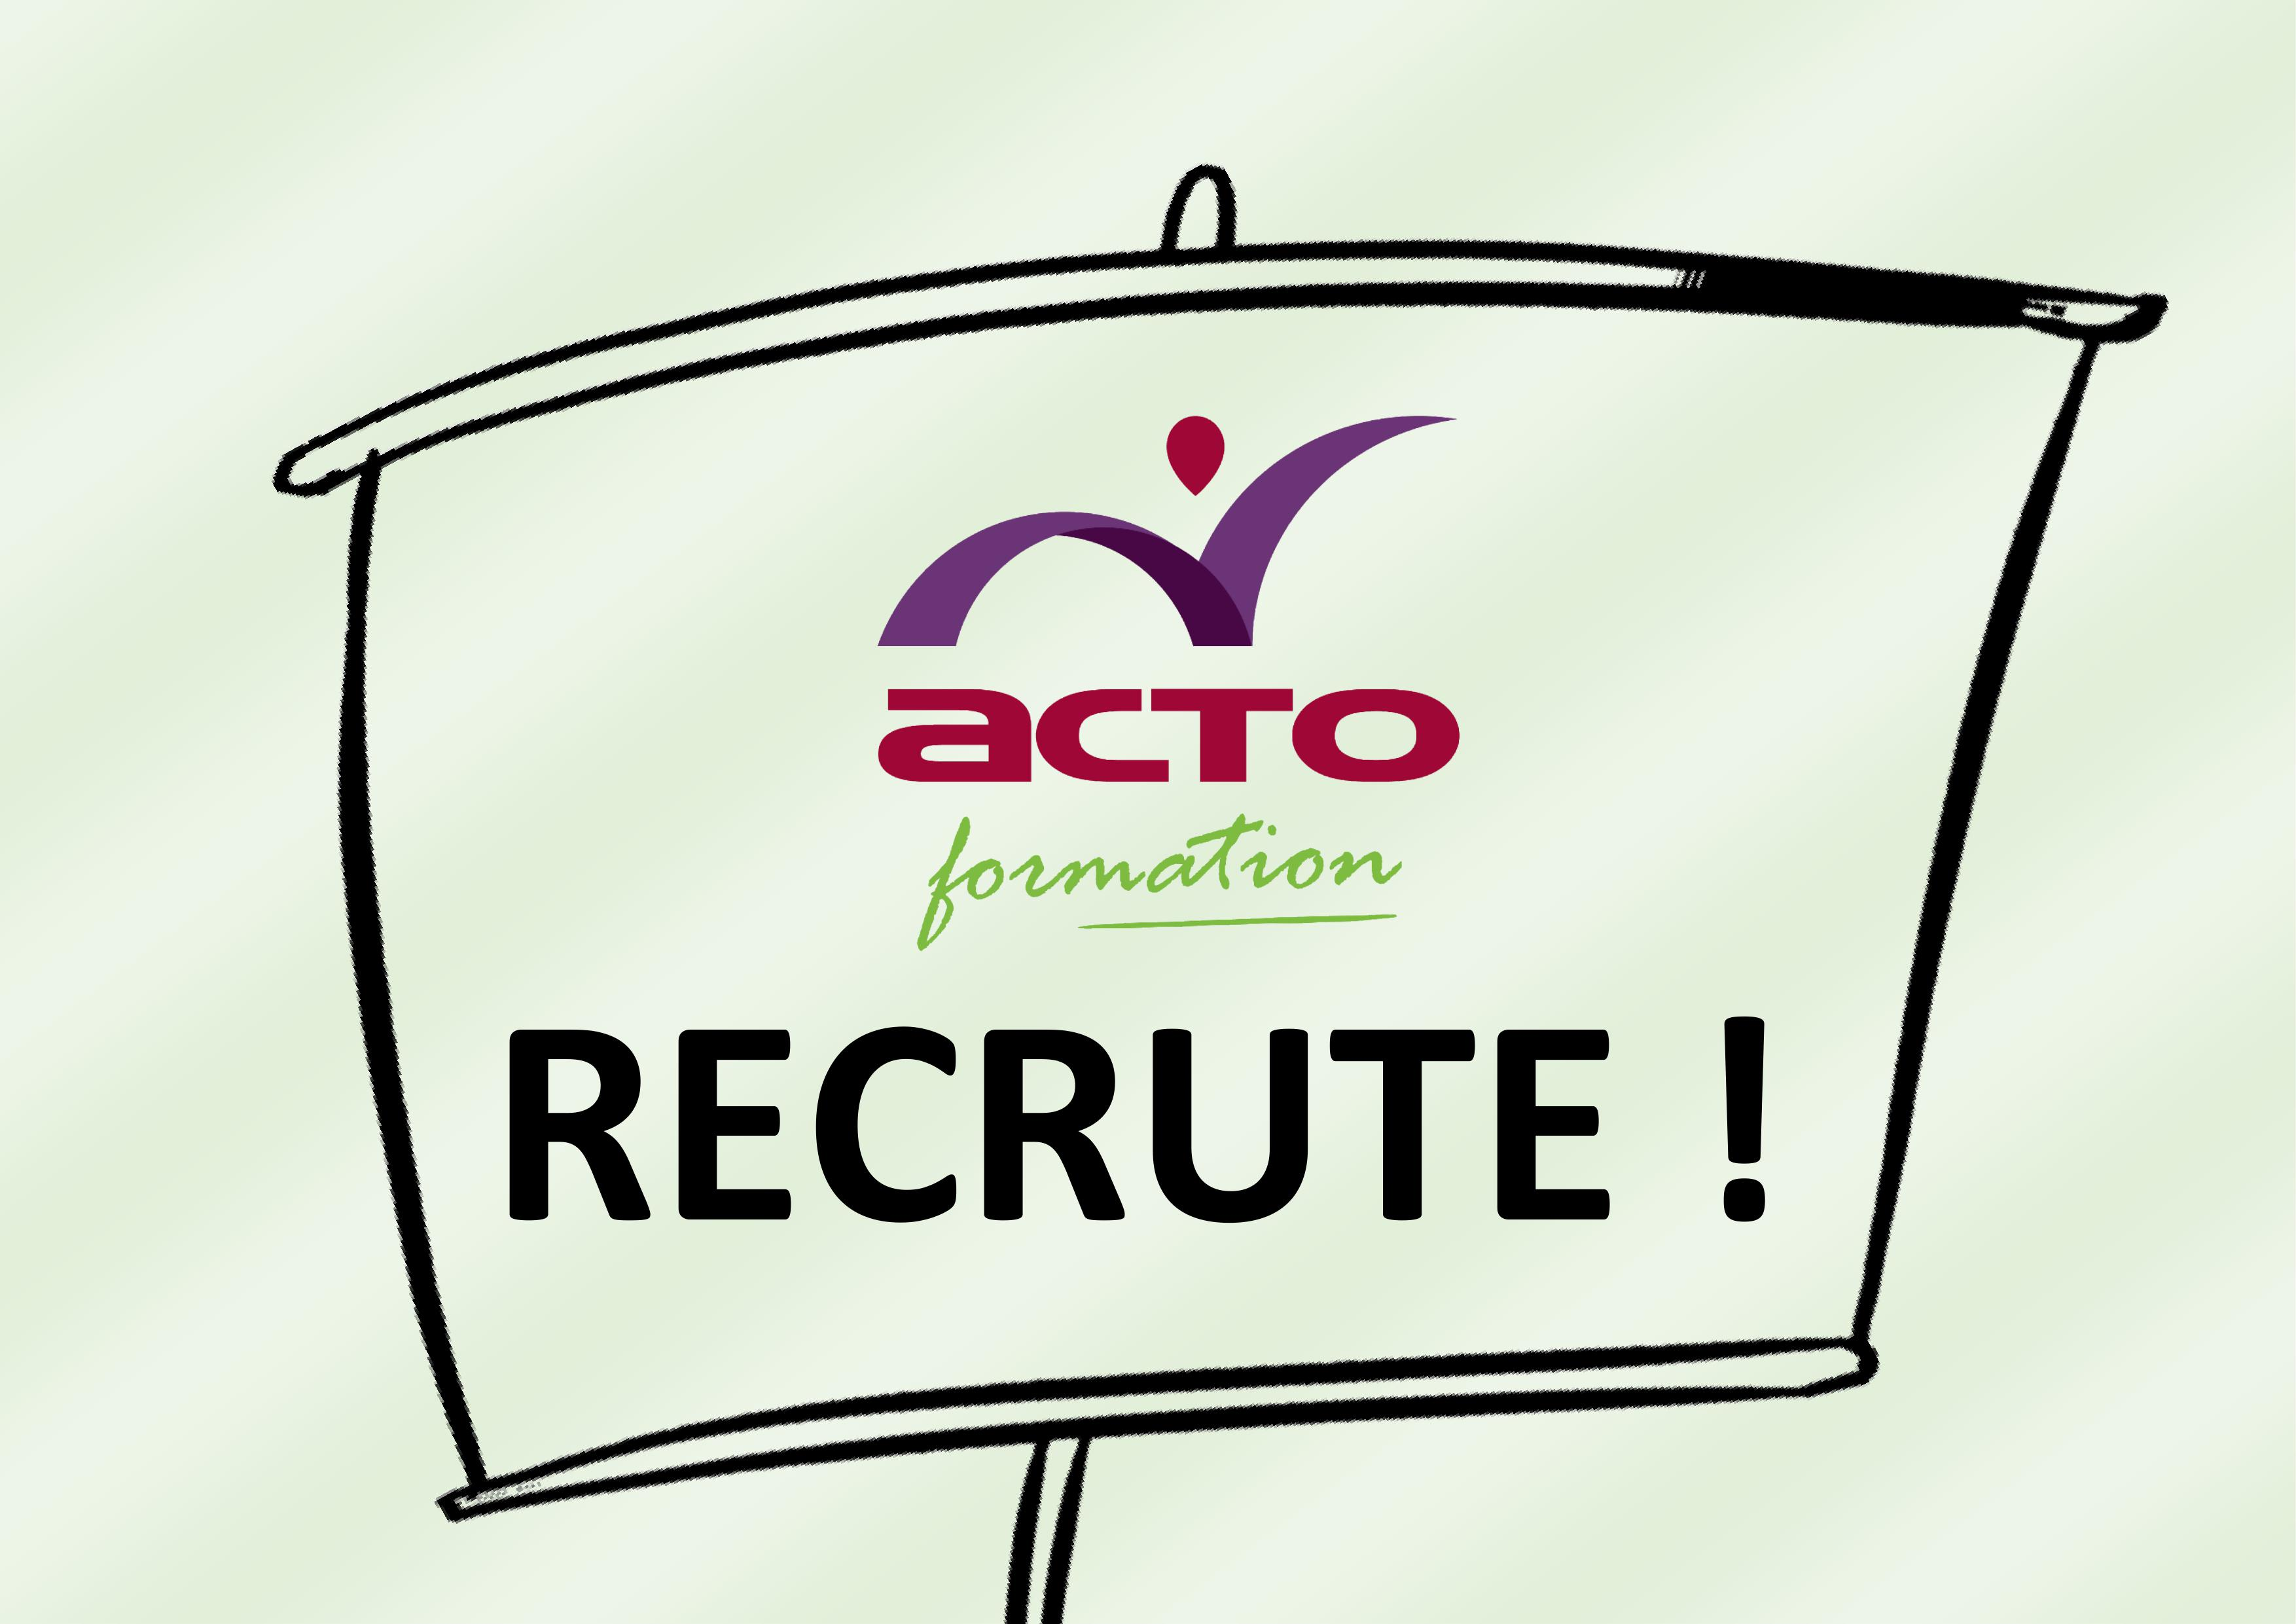 ACTO FORMATION RECRUTE